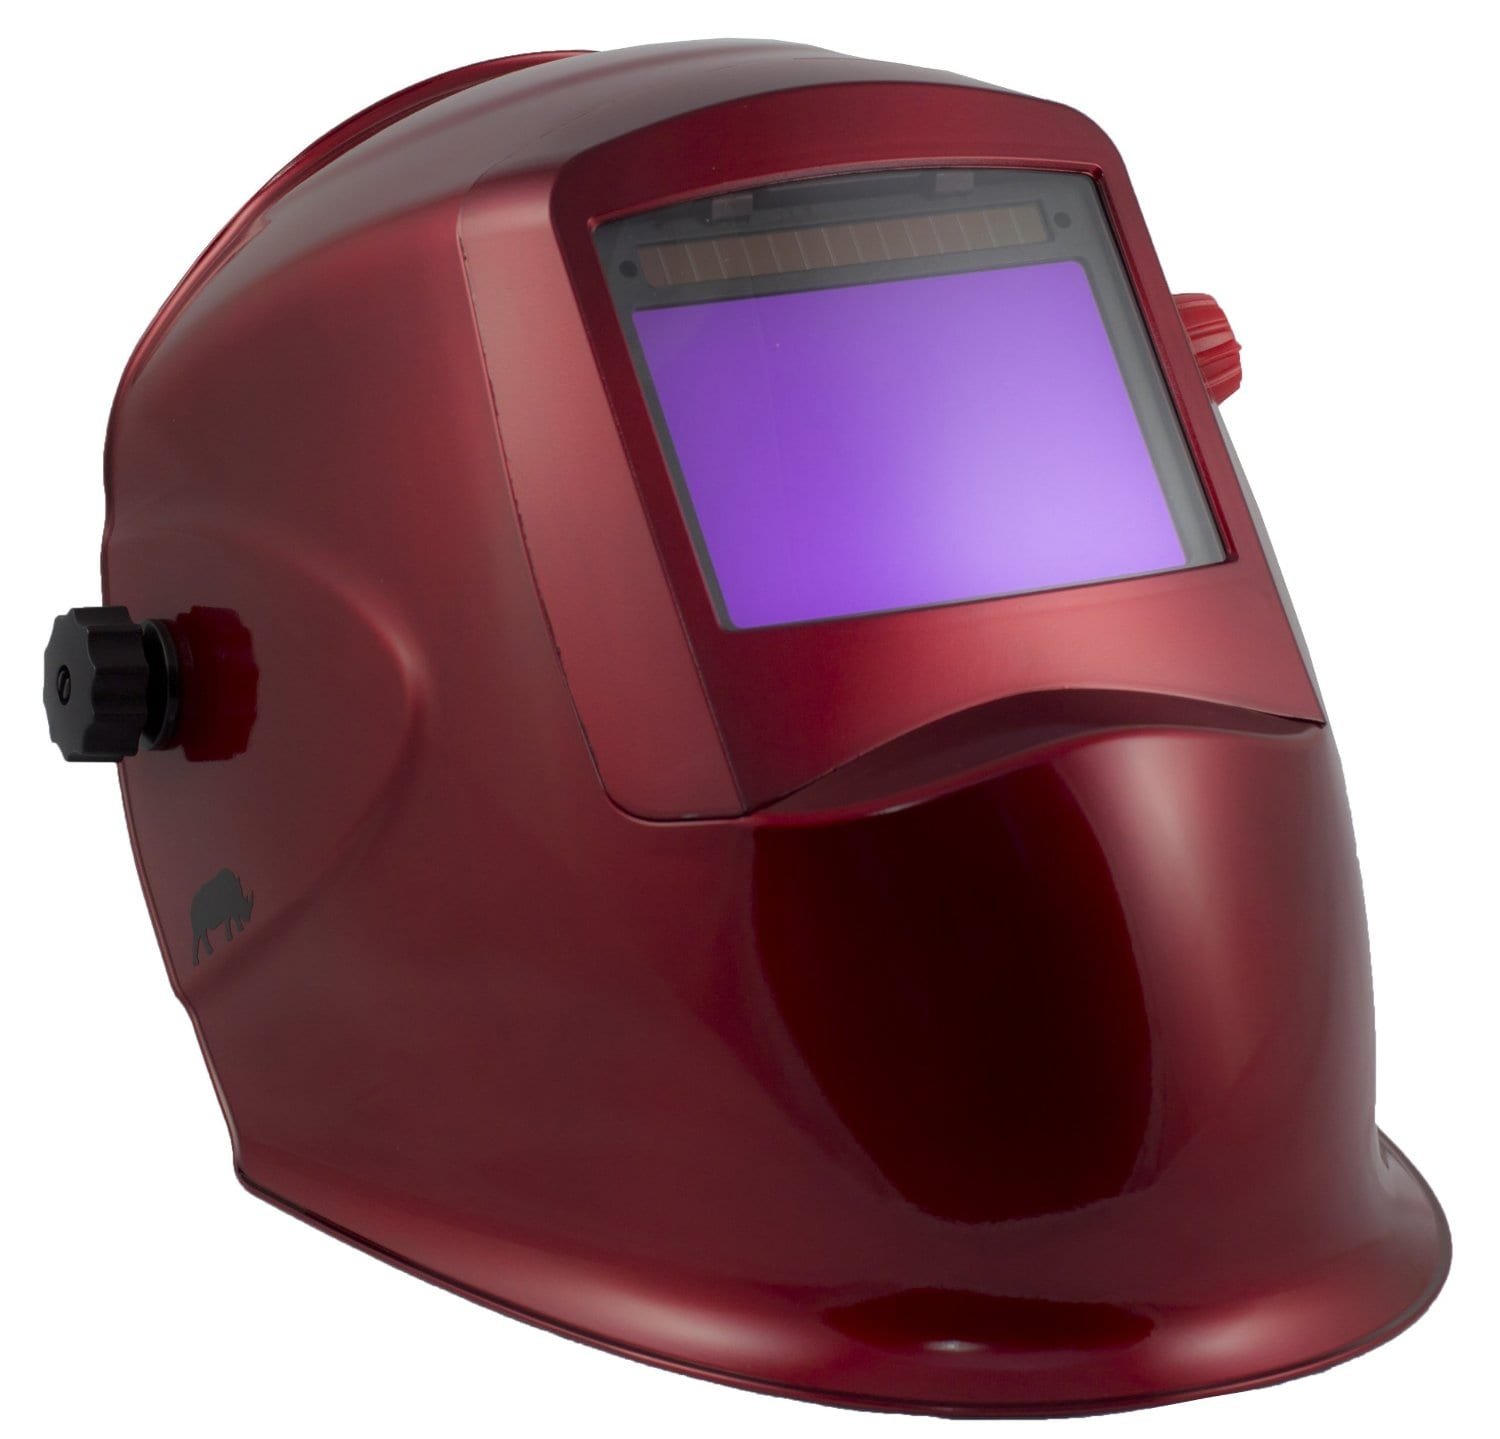 Rhino HUGE LENS Auto Darkening Welding Helmet Hood Mask review